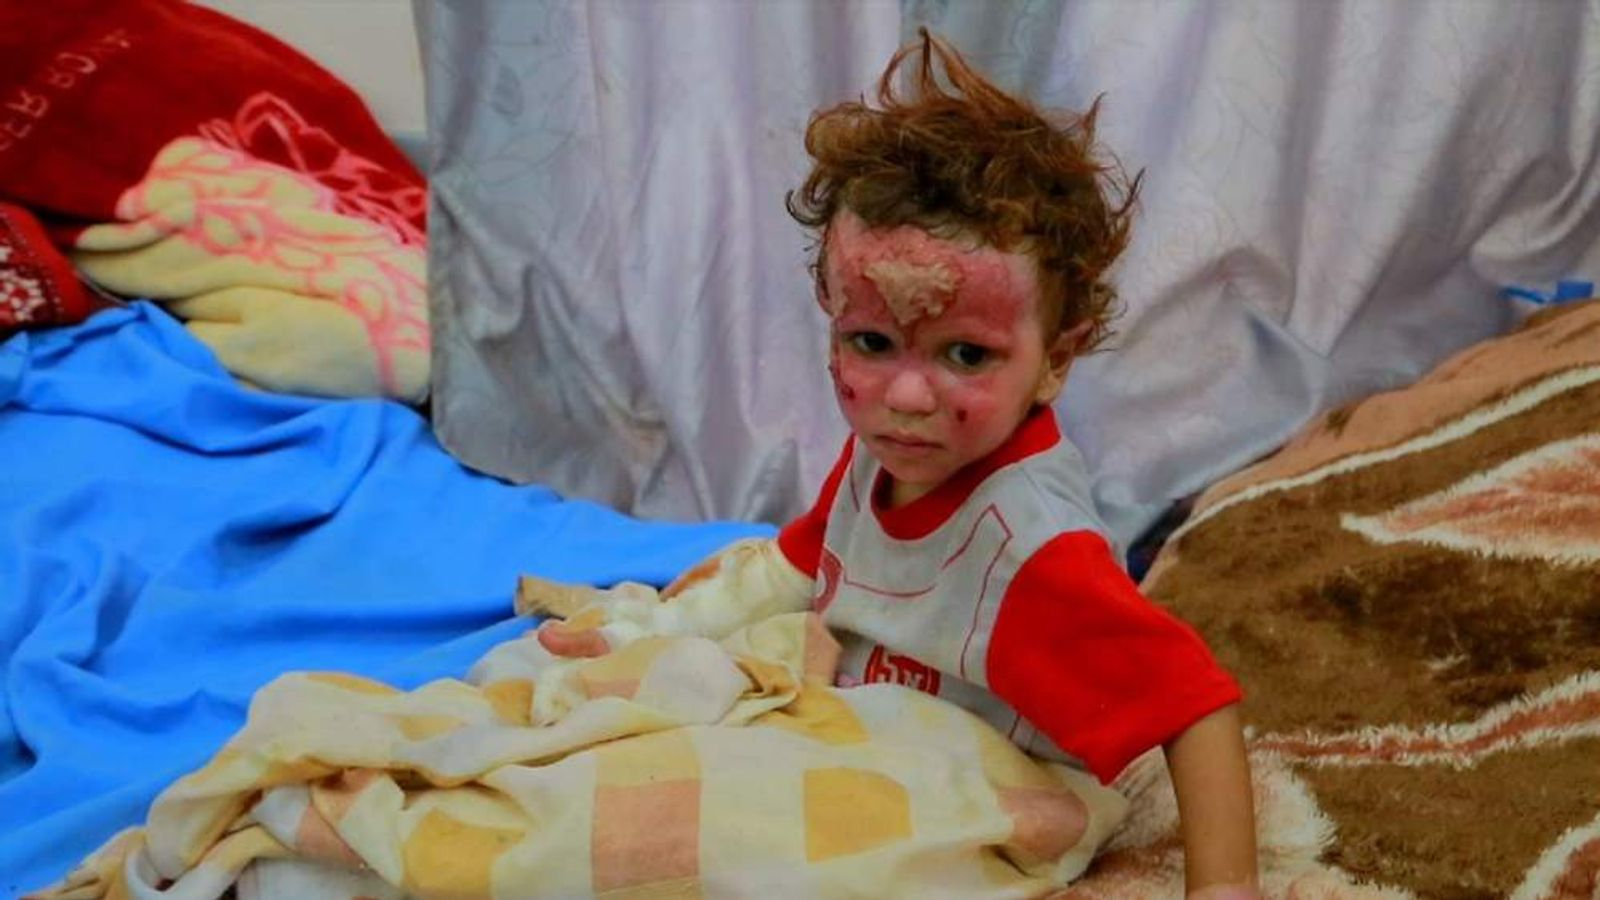 Burned child in hospital in Yemen